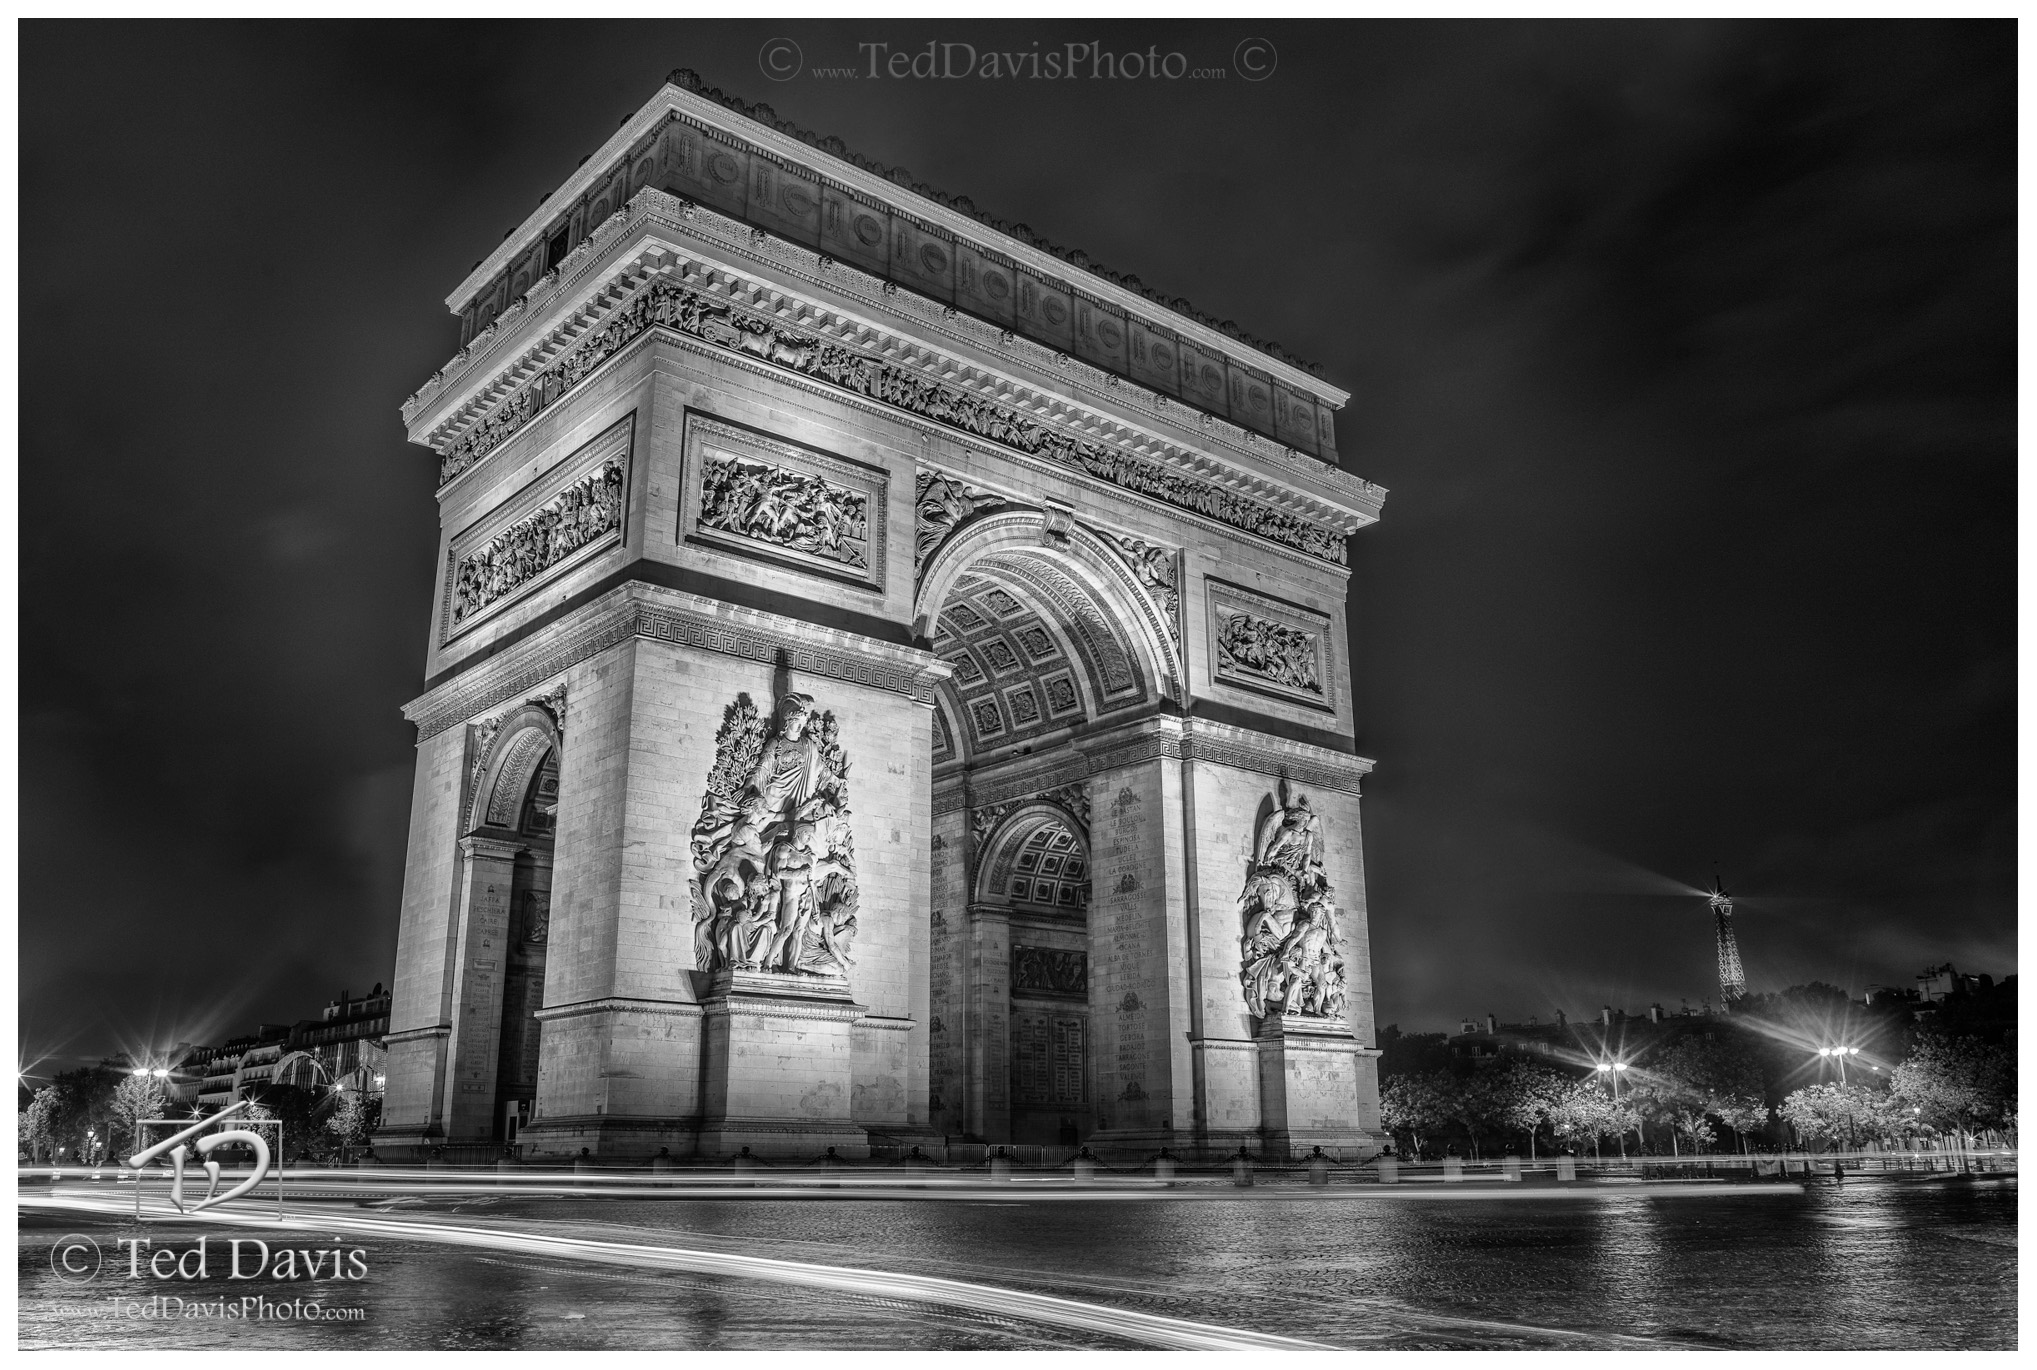 Arc, Triomphe, Paris, France, errie, sunset, rain, Champs, Elysees, monument, Revolution, Napoleonic, Napoleon, Trimphal, timeless, black and white, long exposure